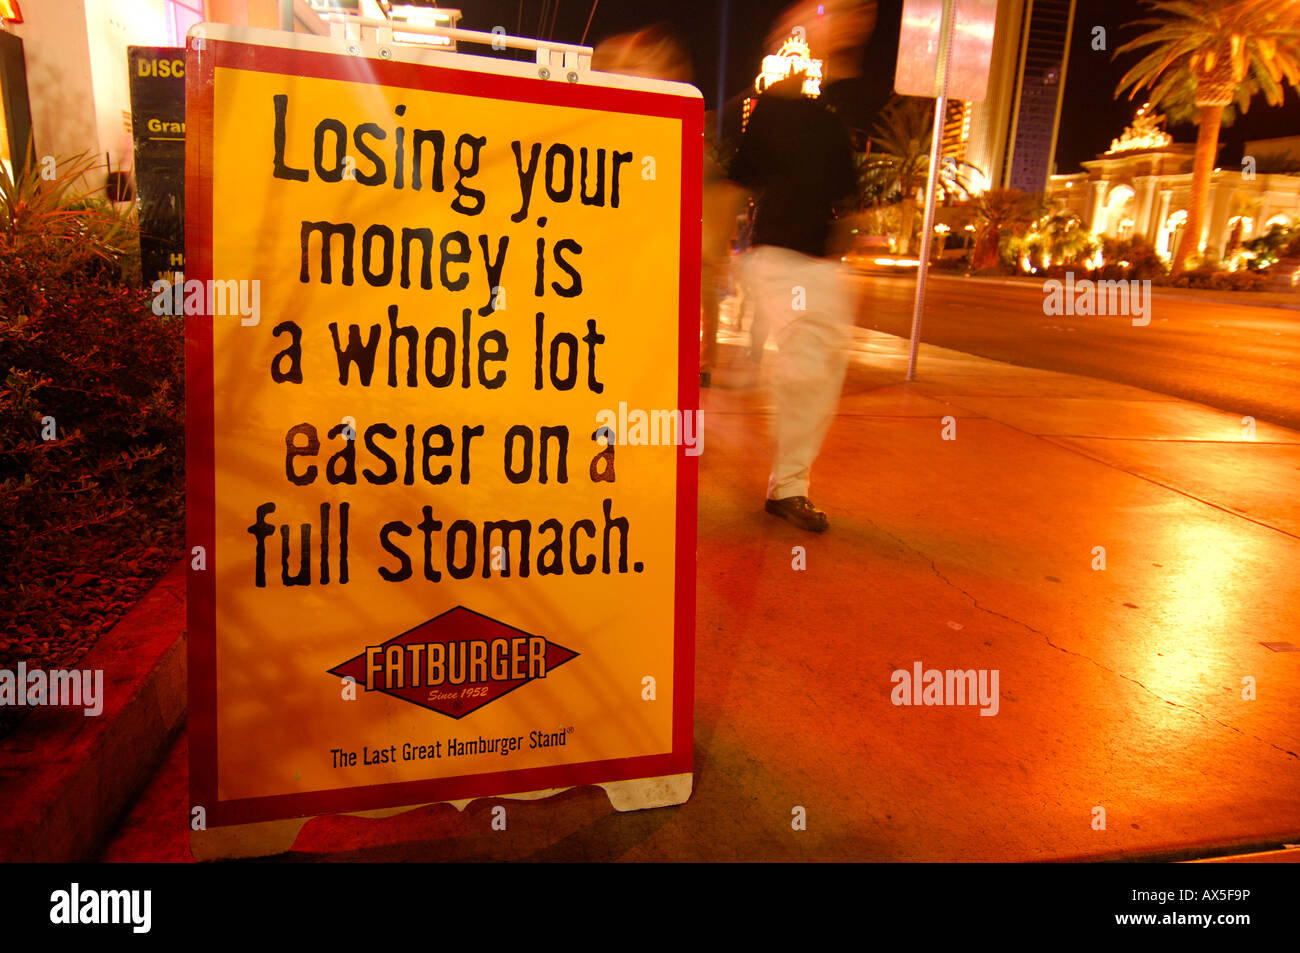 Advertising outside the Fatburger restaurant on Las Vegas Boulevard, Las Vegas, Nevada, USA, North America - Stock Image